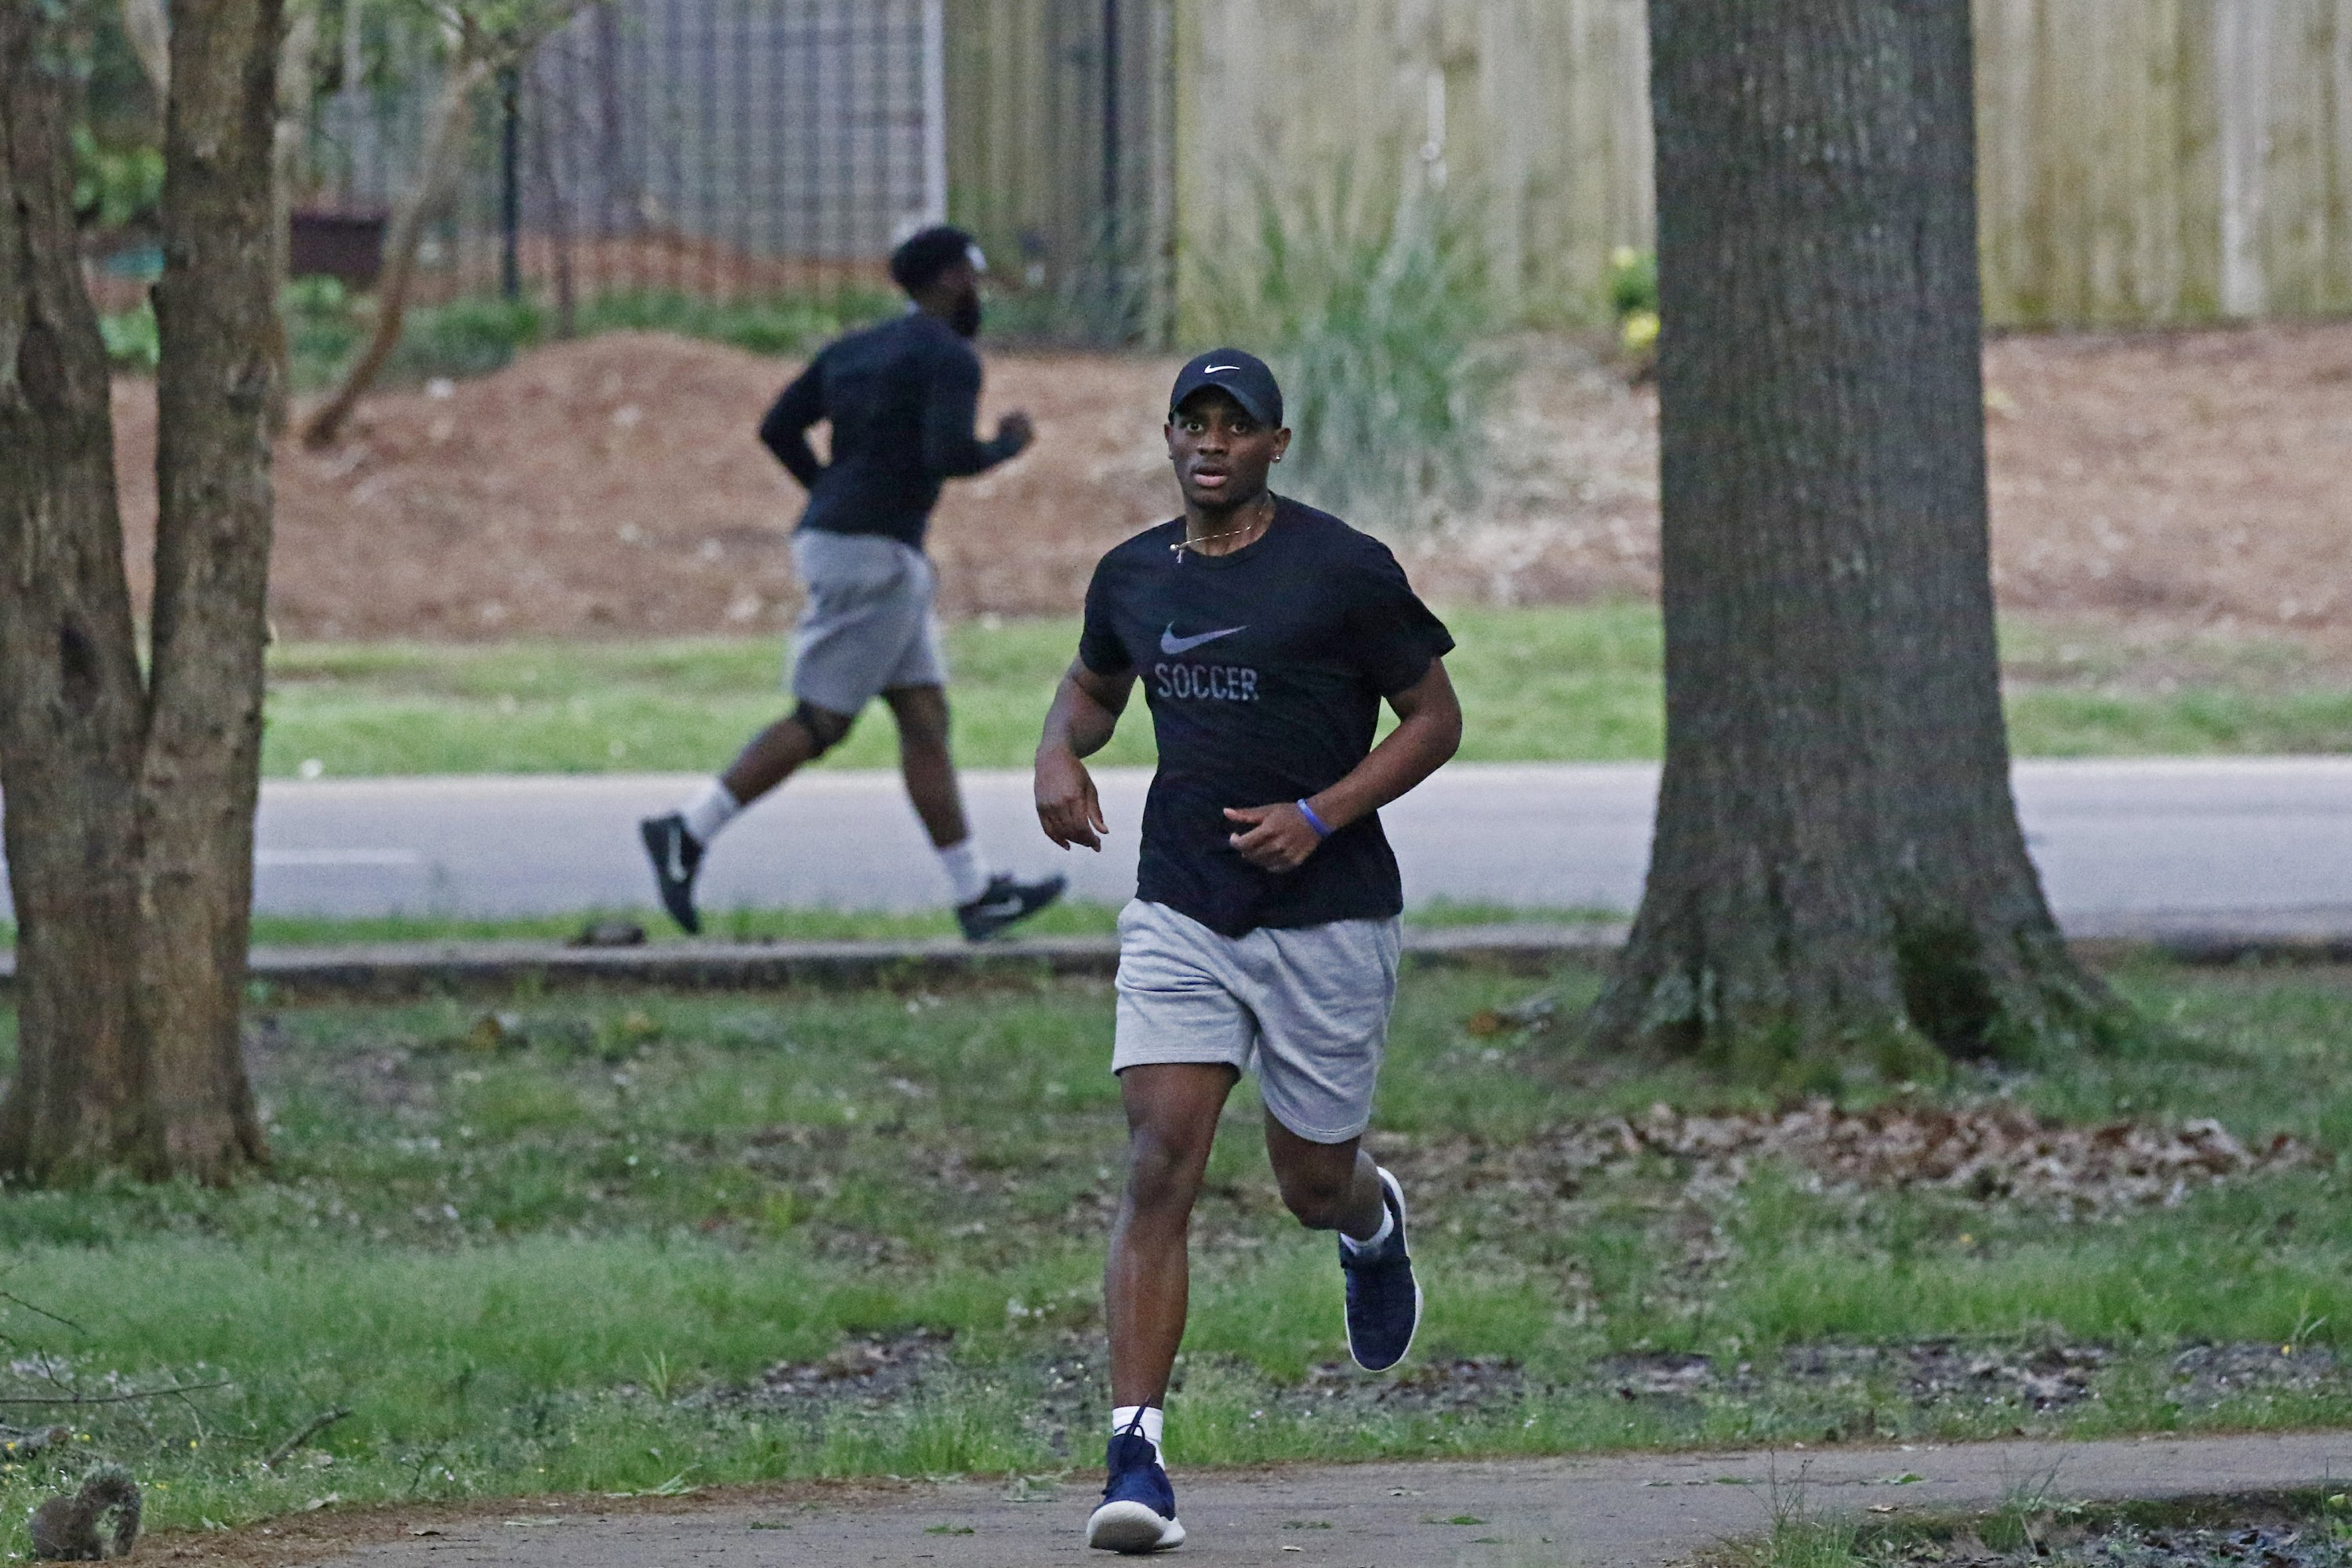 Runners still finding release on the road during coronavirus